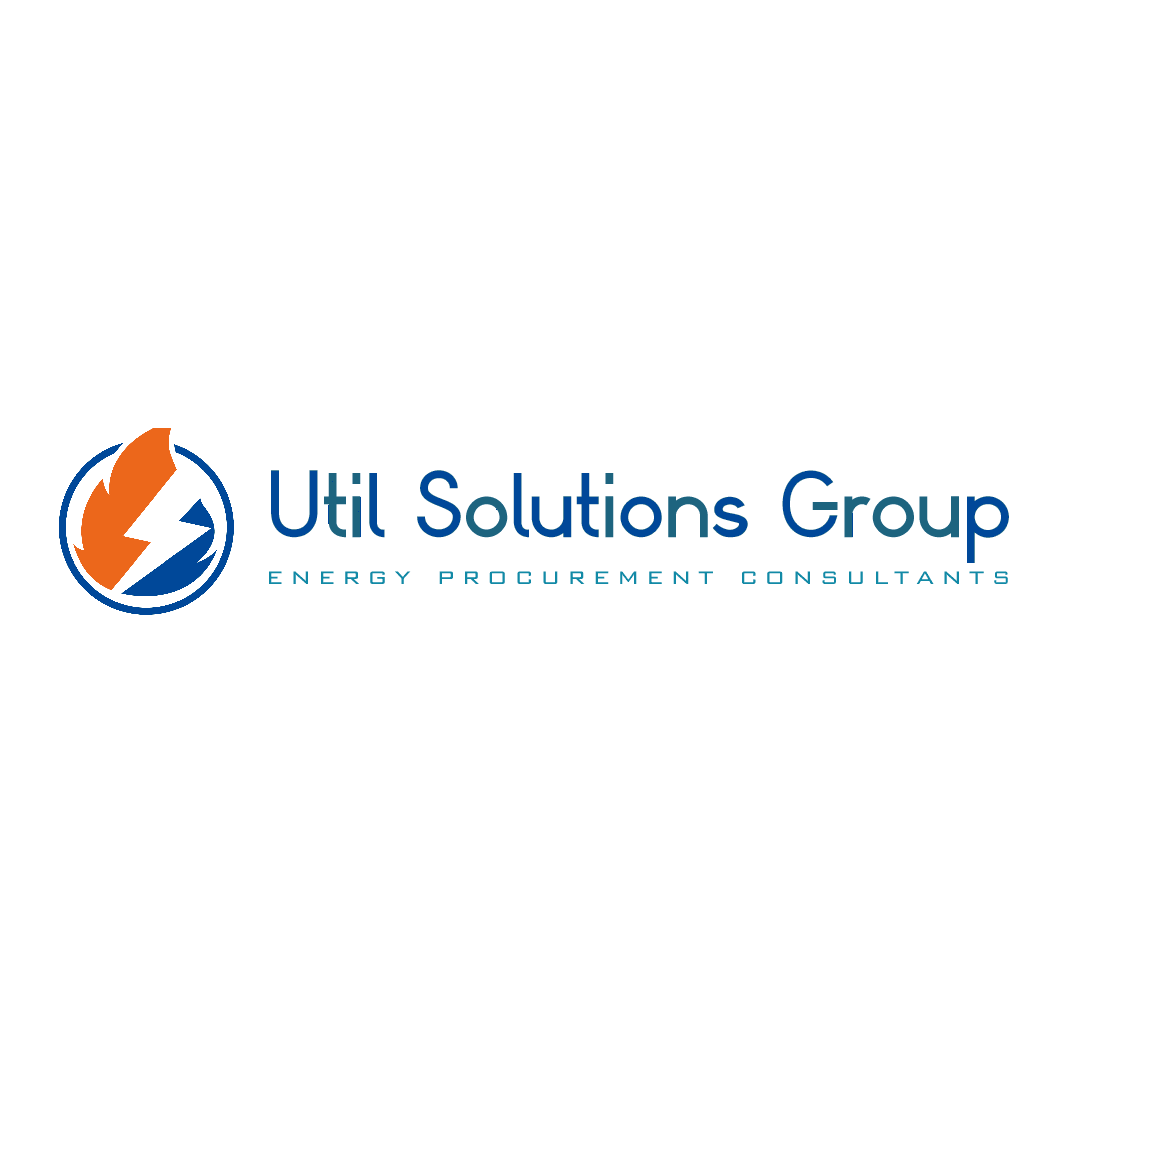 Util Solutions Group